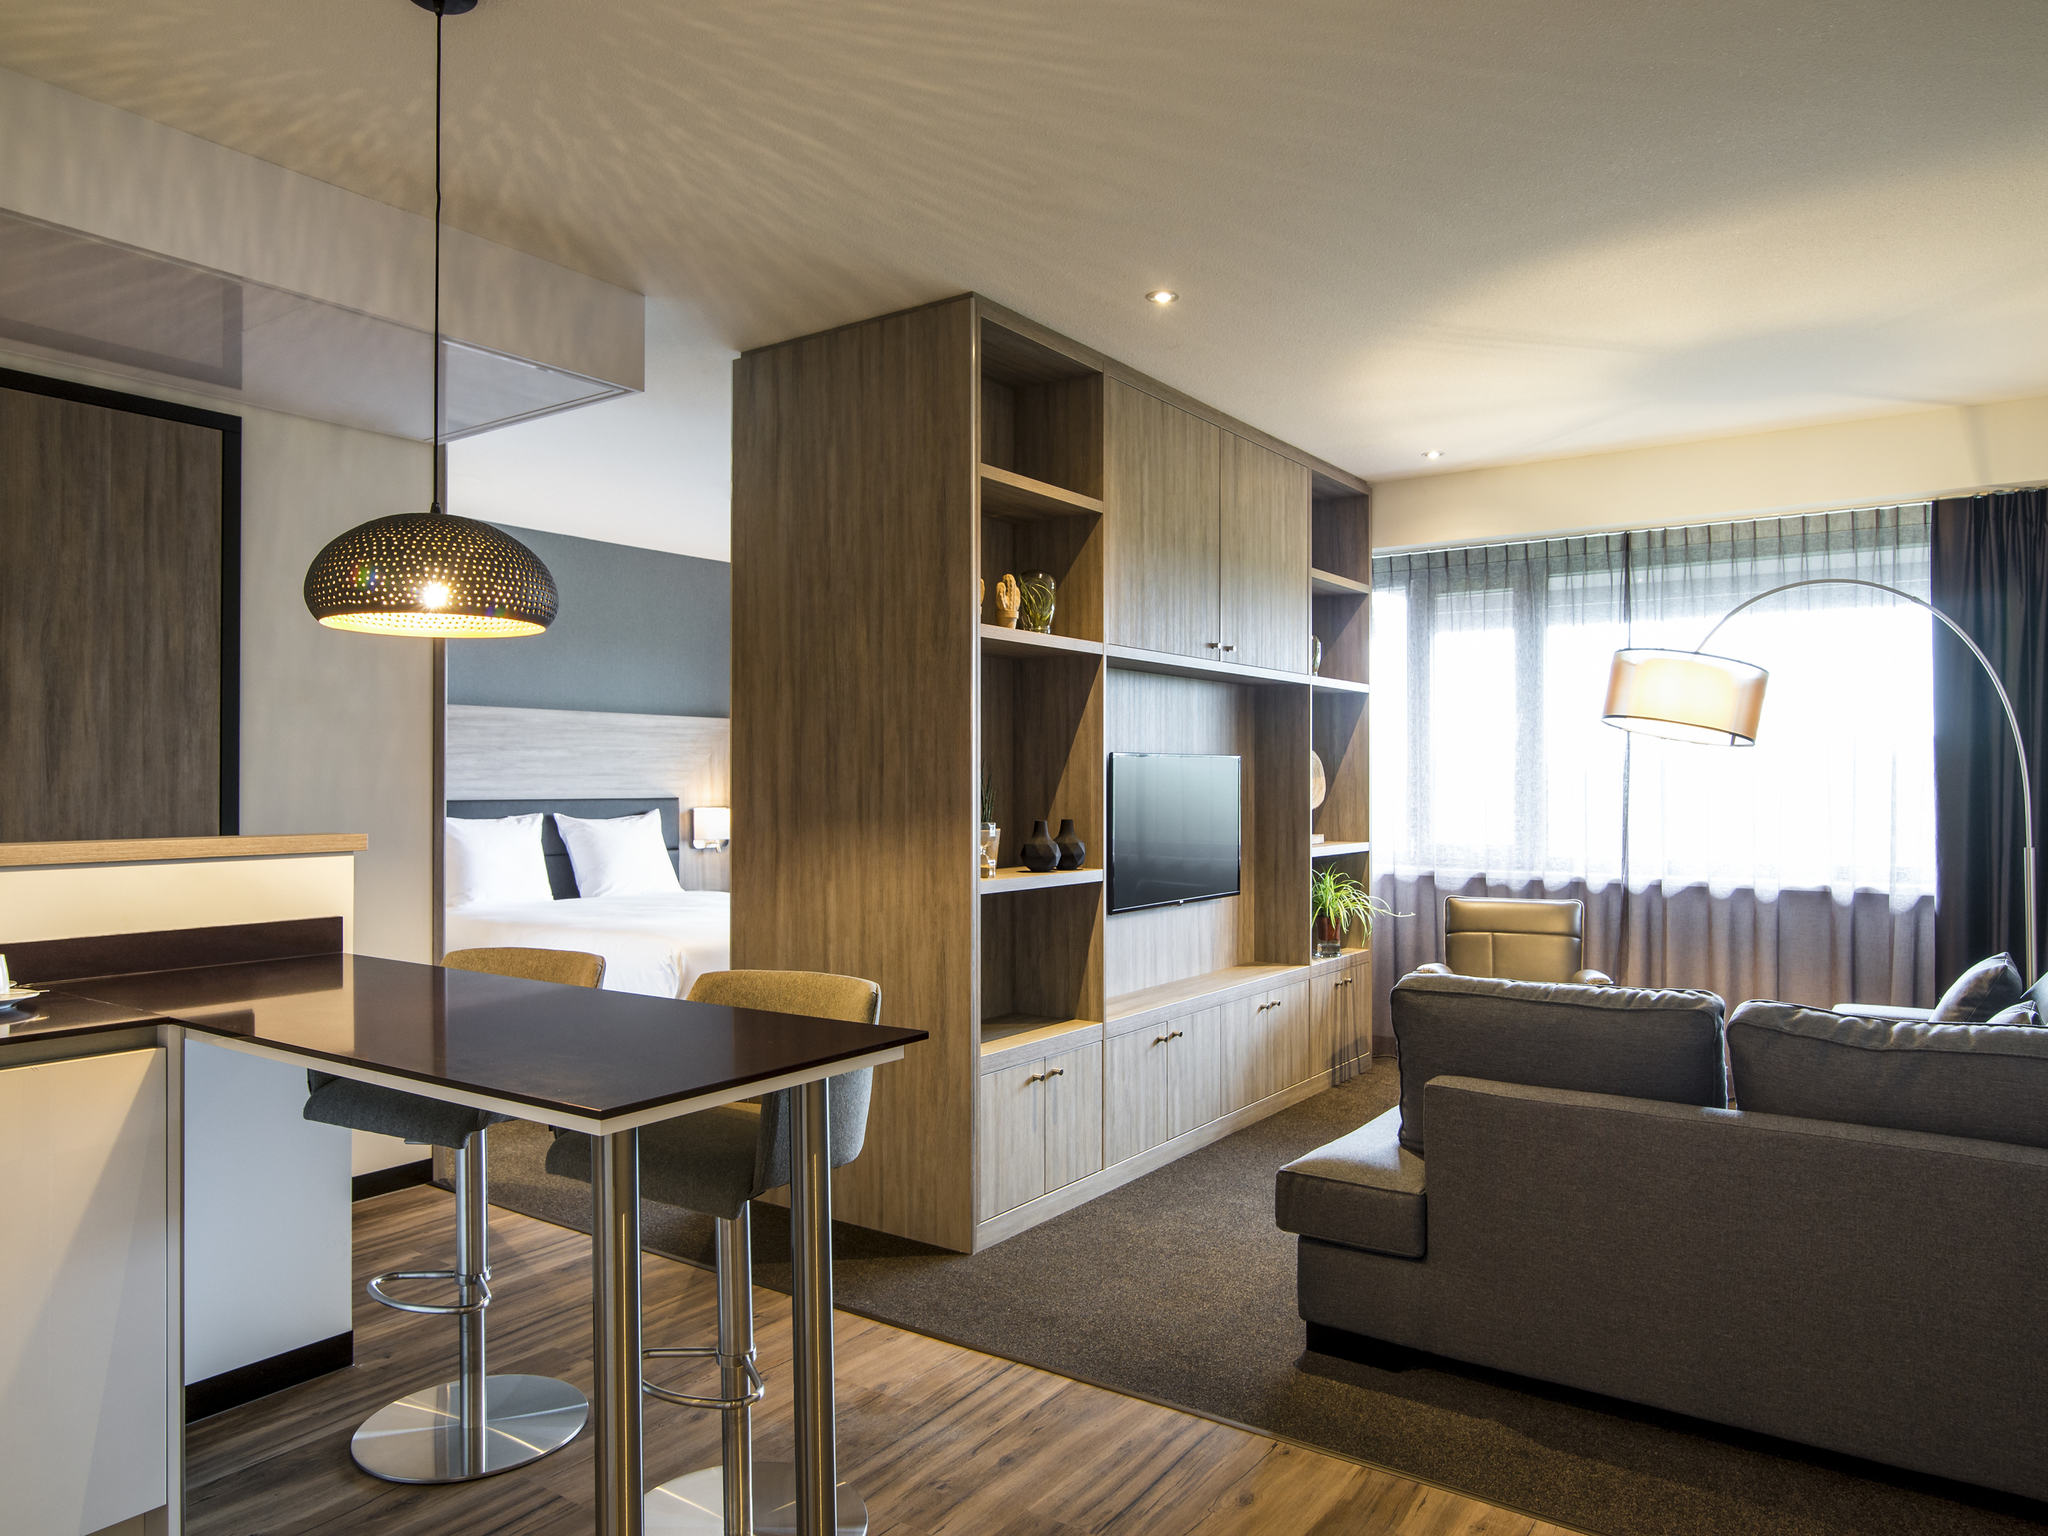 Hôtel - Aparthotel Adagio Amsterdam City South